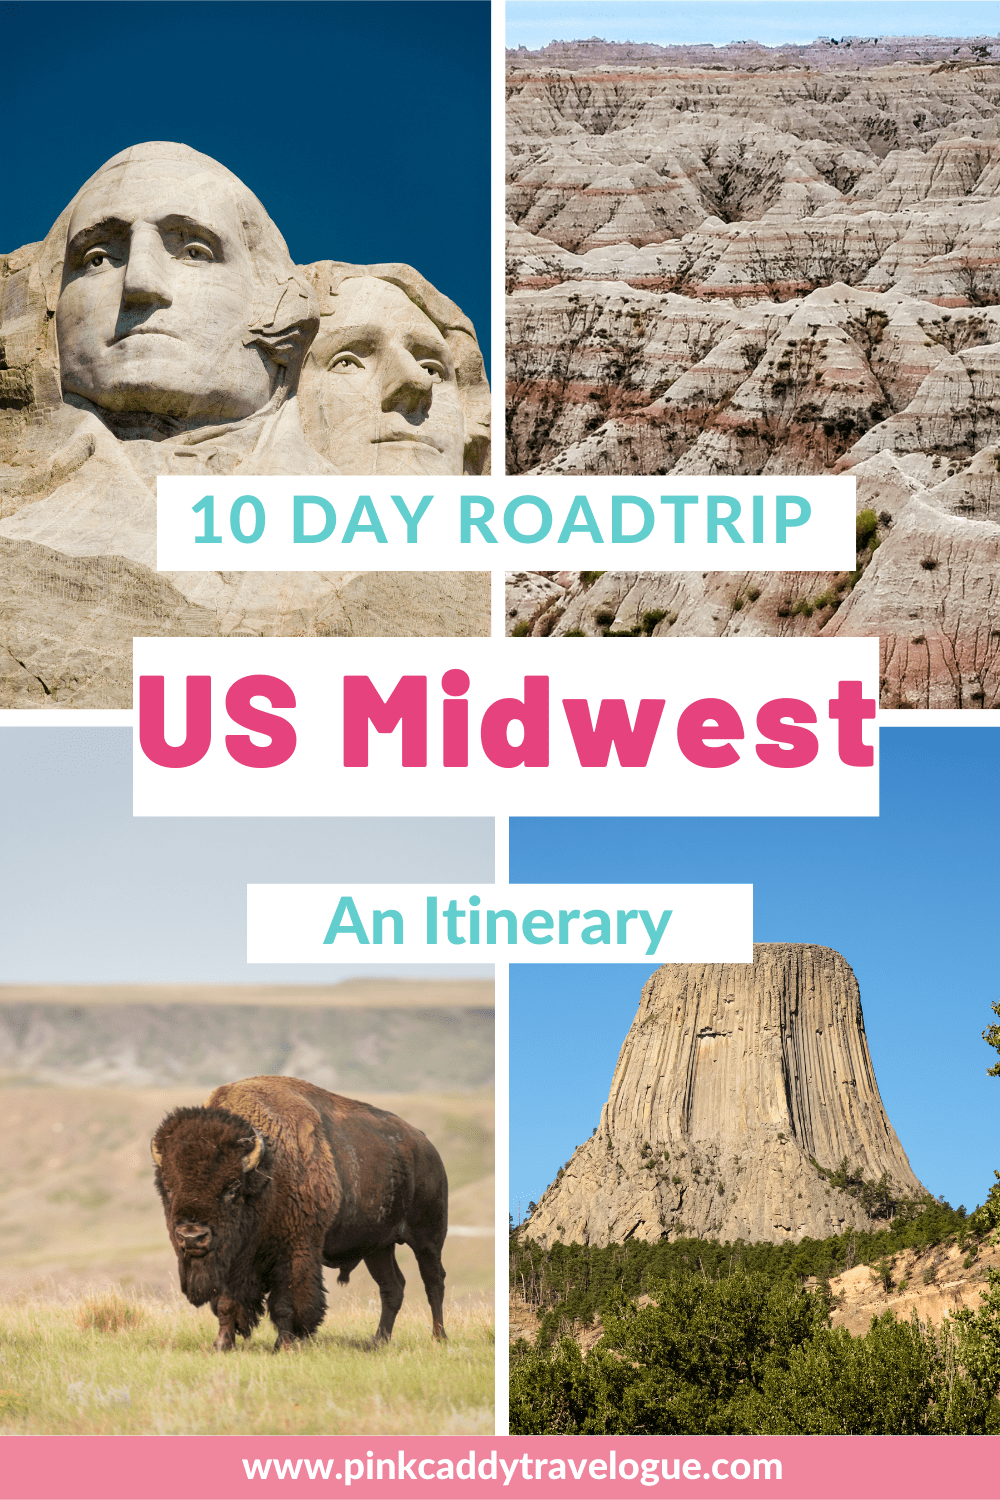 The United States's Midwest is full of hidden gems and amazing places! This 10 day road trip itinerary hits all of the highlights, like Mt. Rushmore and the Badlands, as well as a many off-the-beaten-path destinations. Check it out! #unitedstates #midwest #roadtrip #mtrushmore #devilstower #badlands